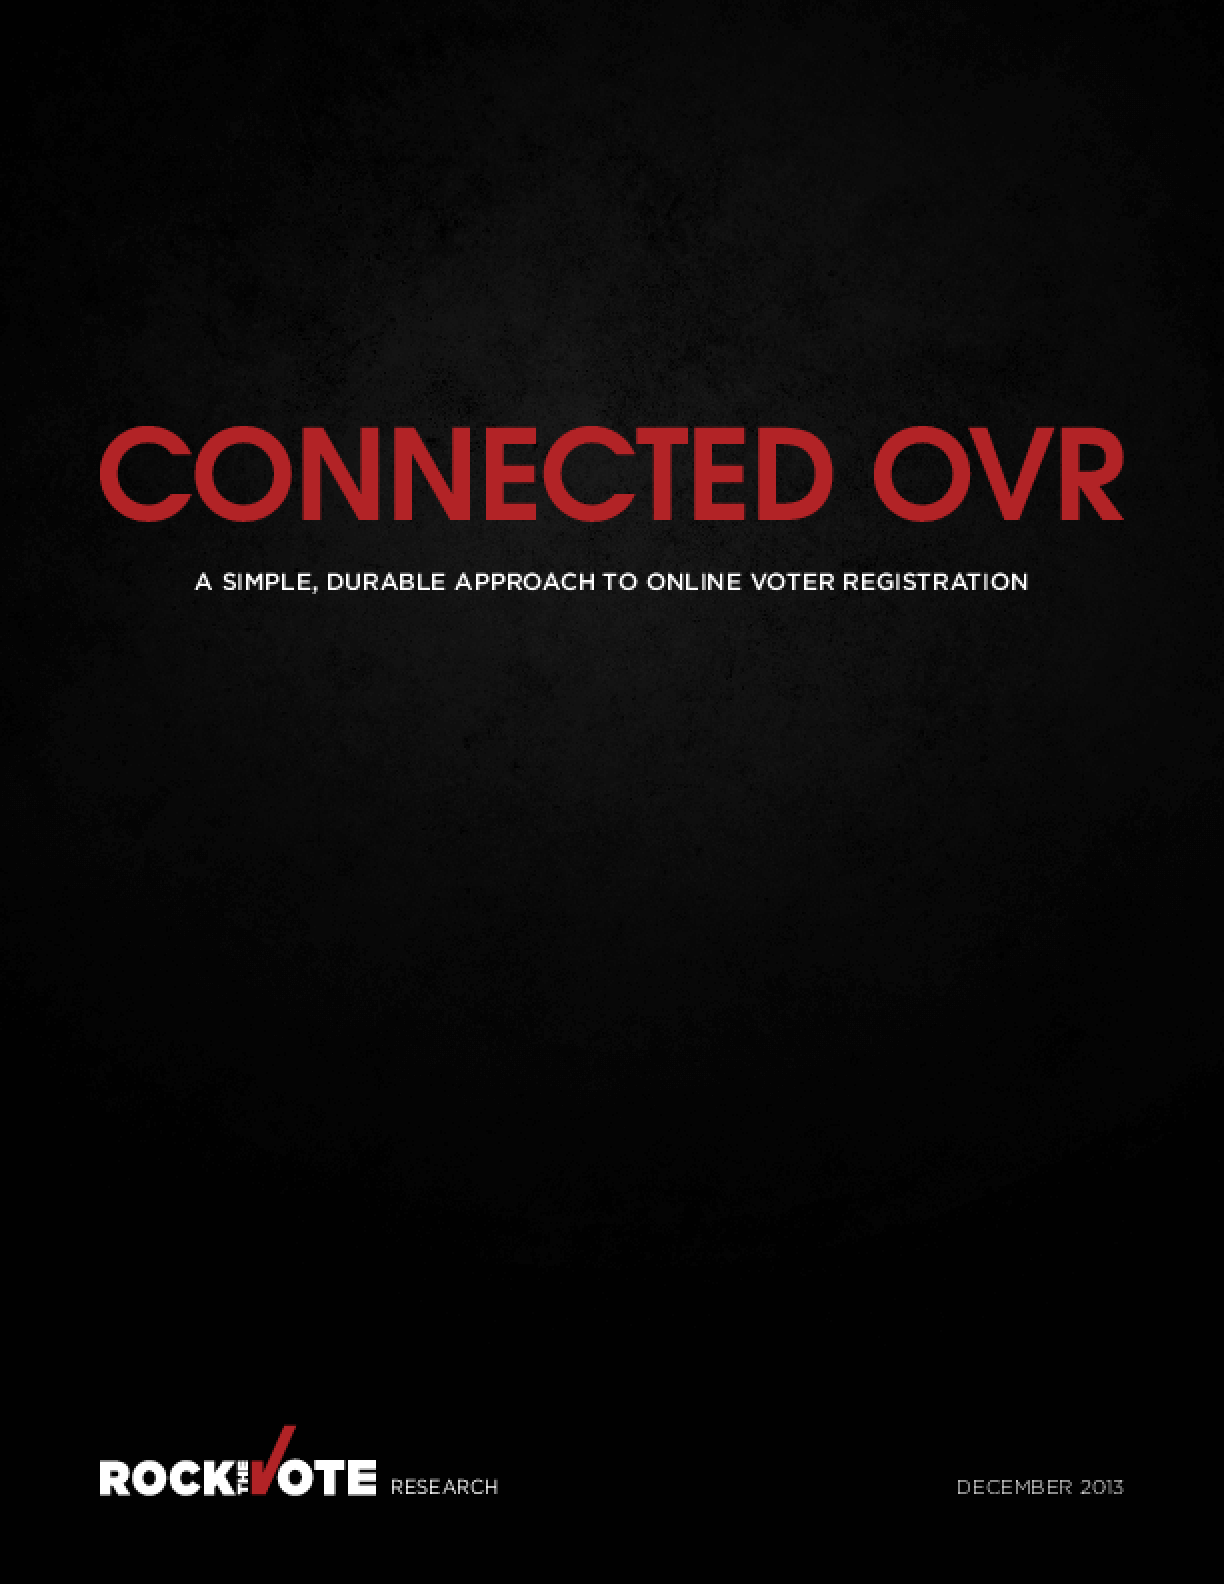 Connected OVR: A Simple, Durable Approach to Online Voter Registration